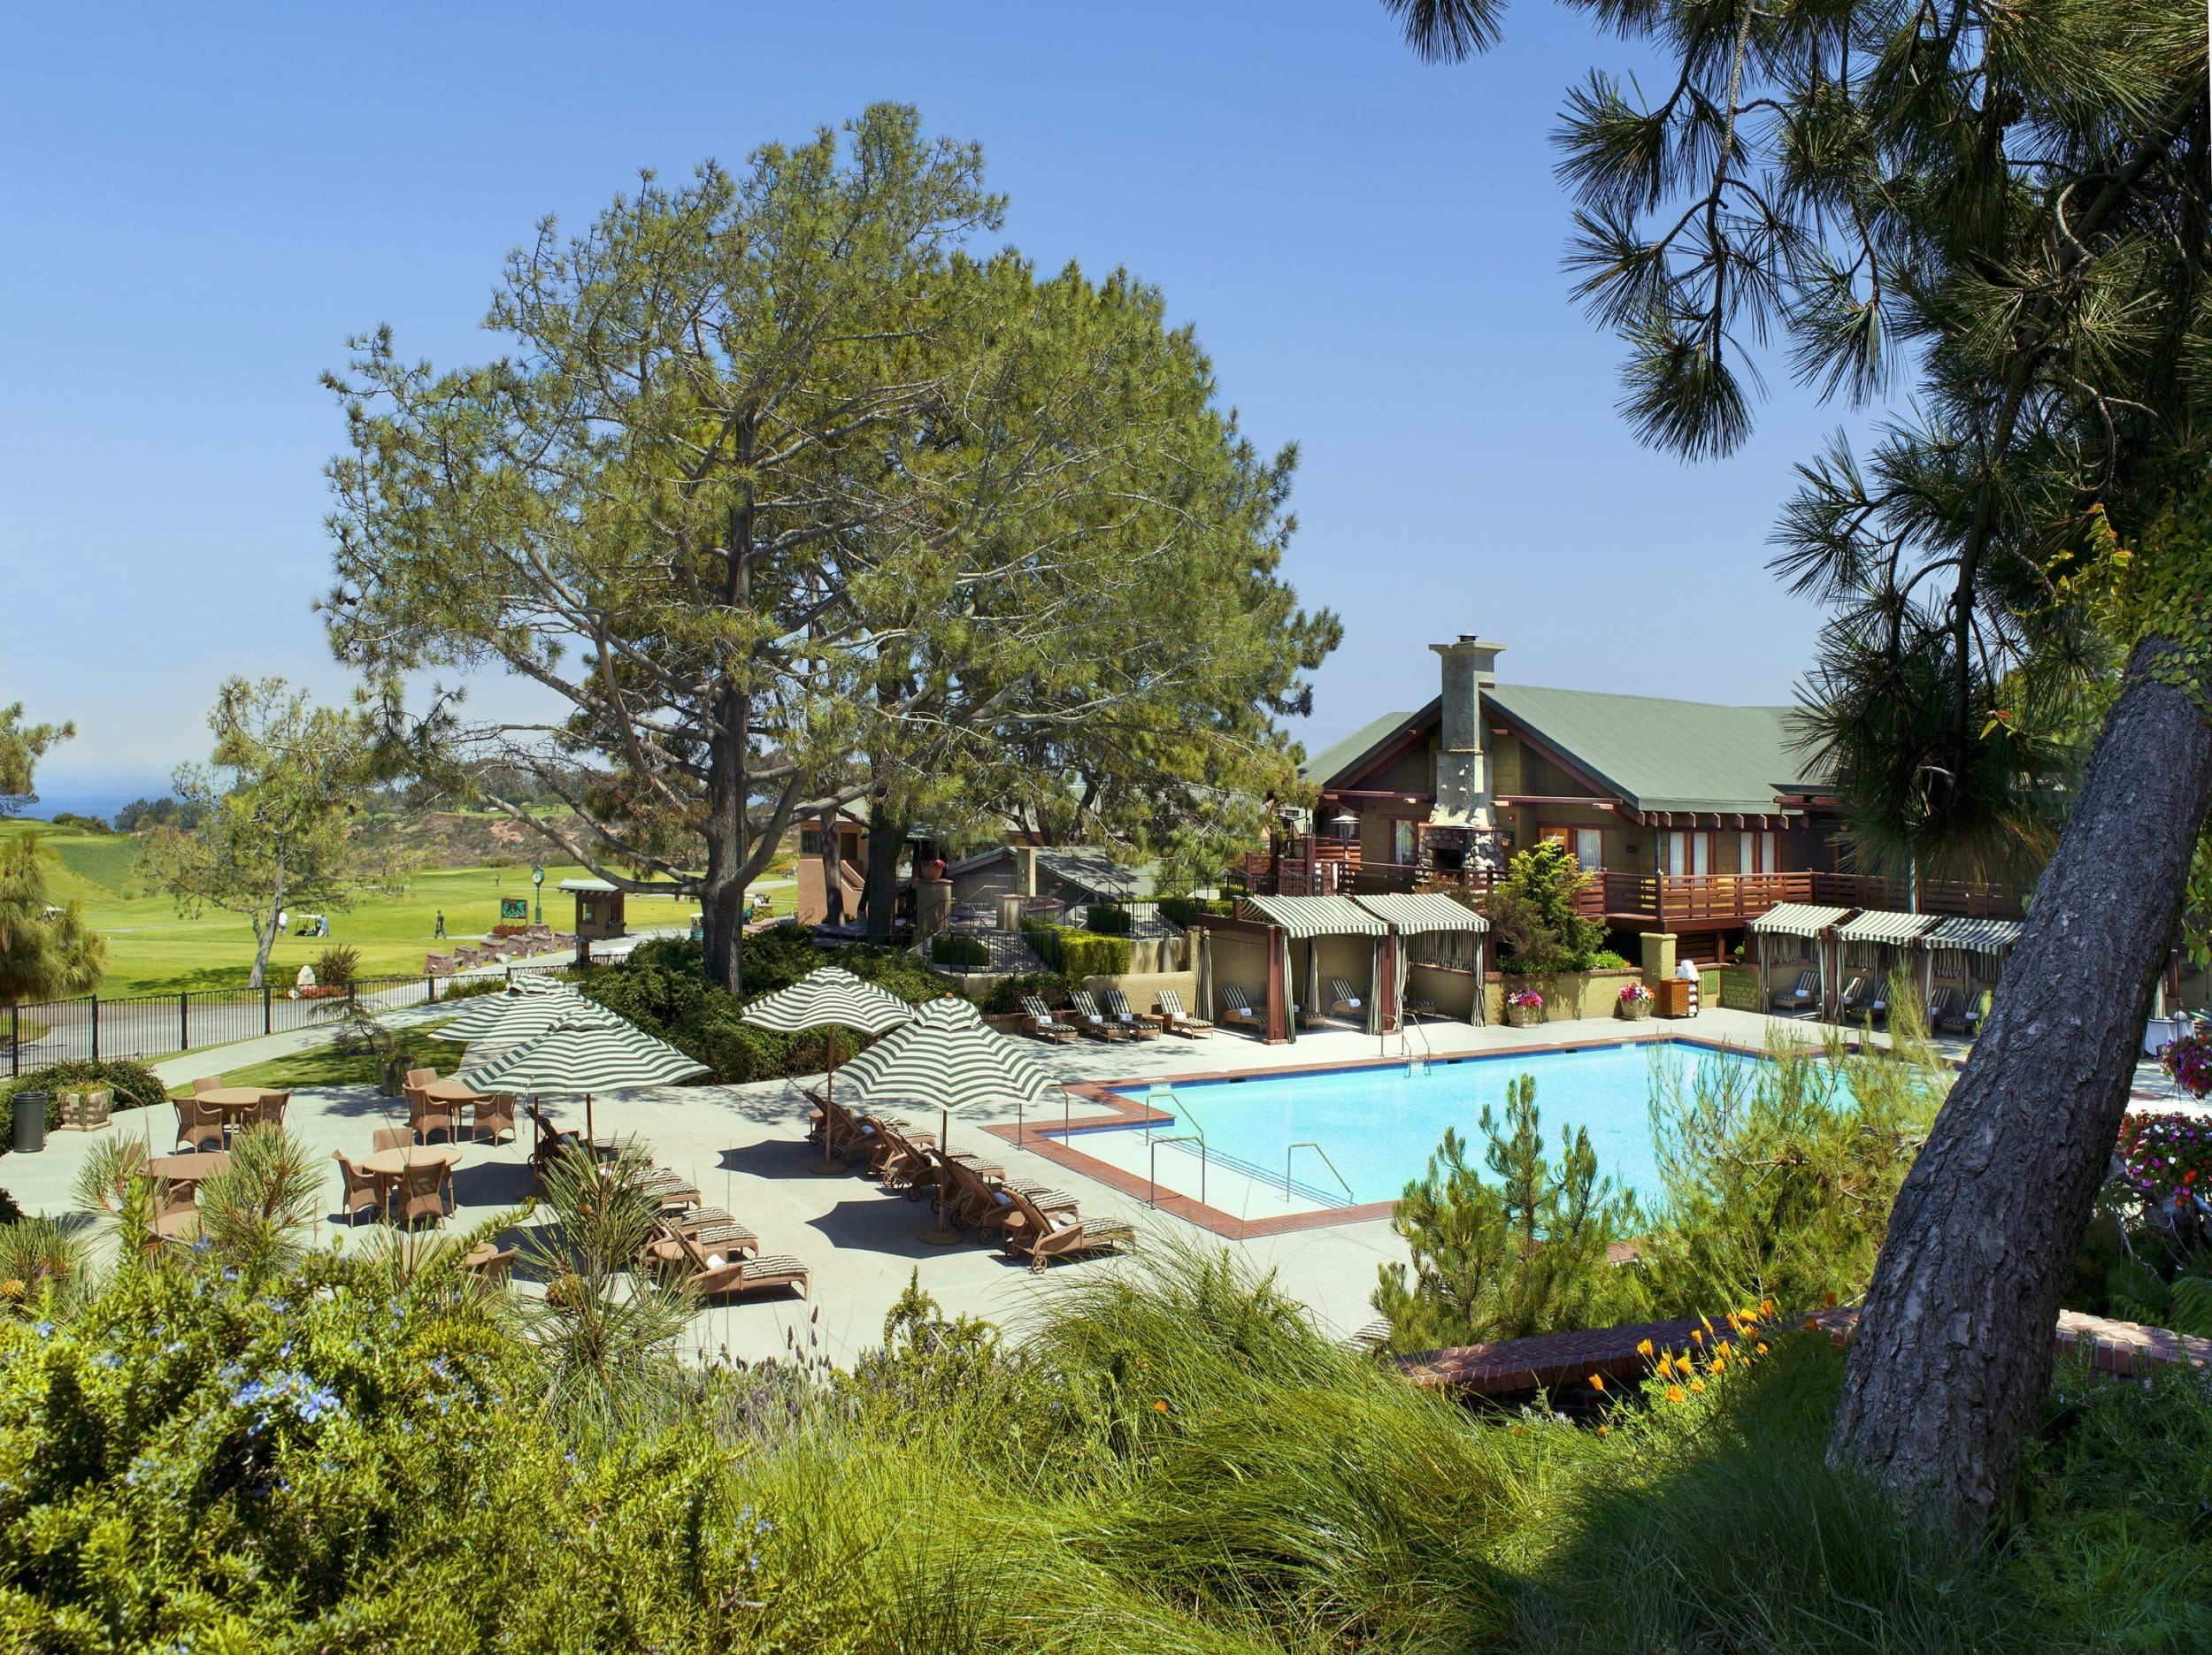 Pool Area At The Lodge Torrey Pines